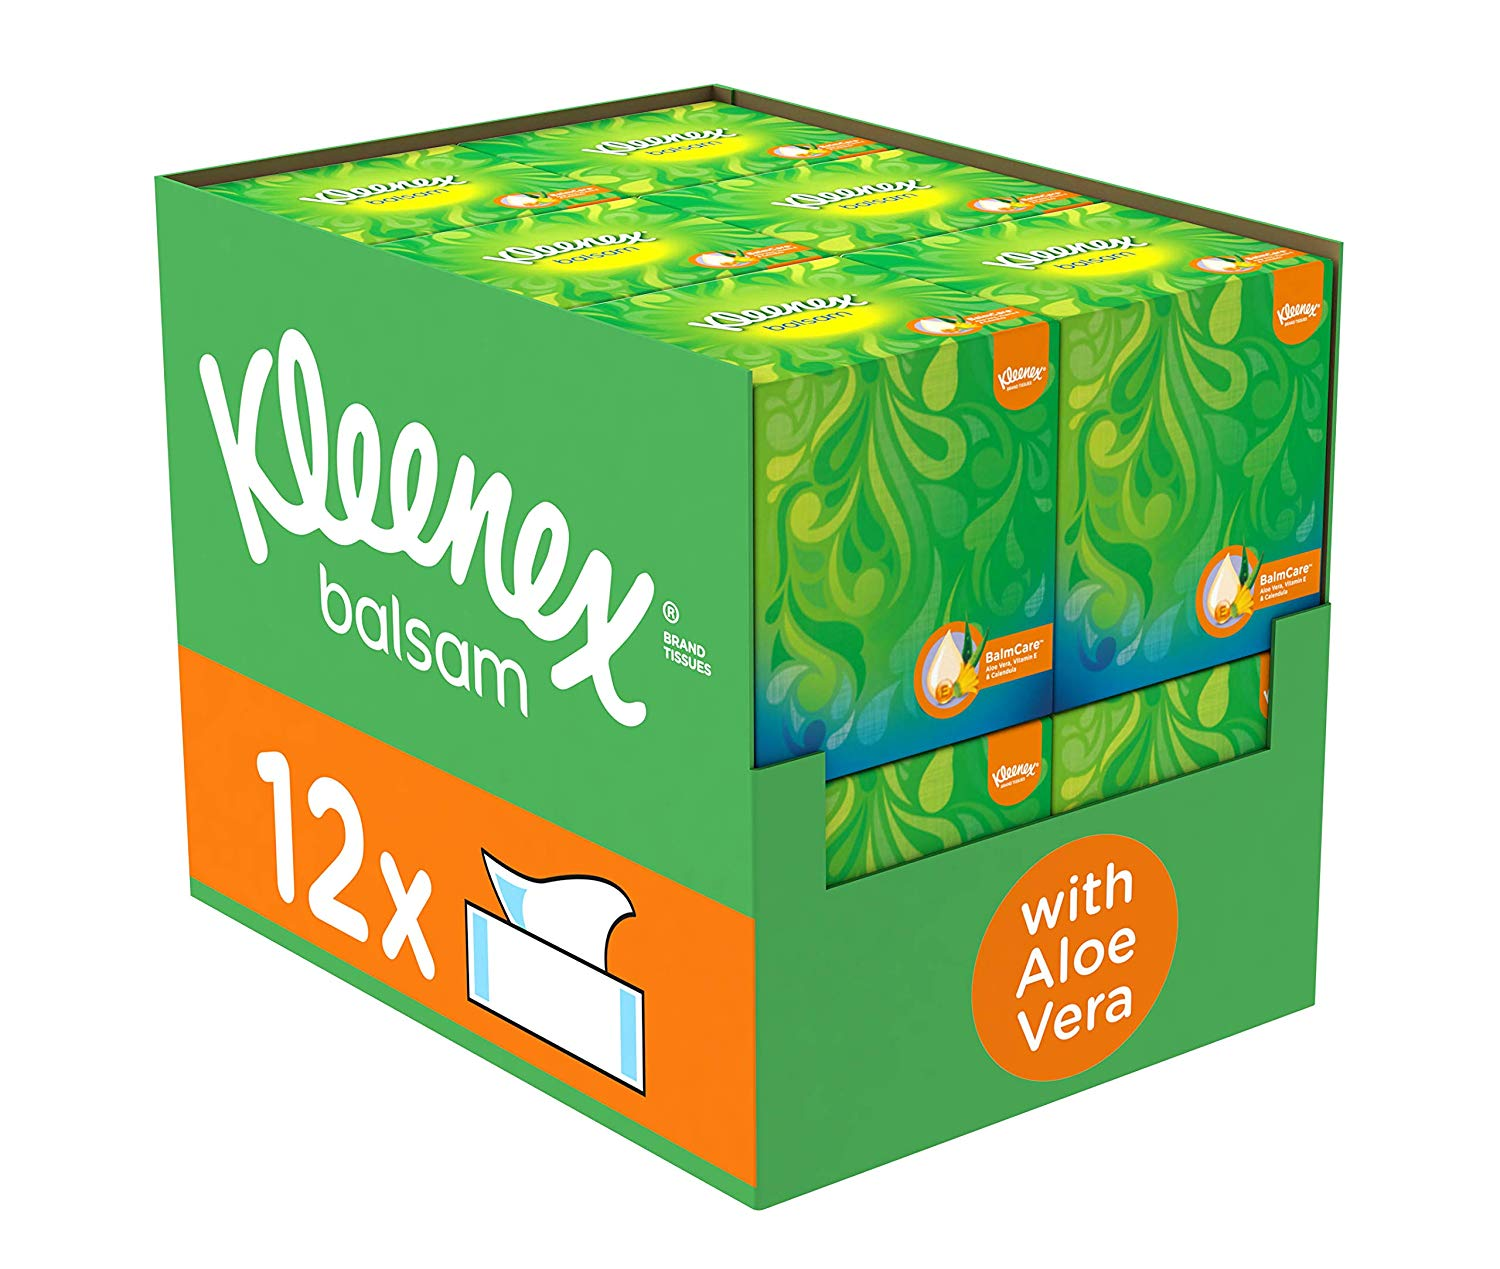 Kleenex Balsam Facial Tissues (Protective Balm for Cold and Flu Symptoms), Pack of 12